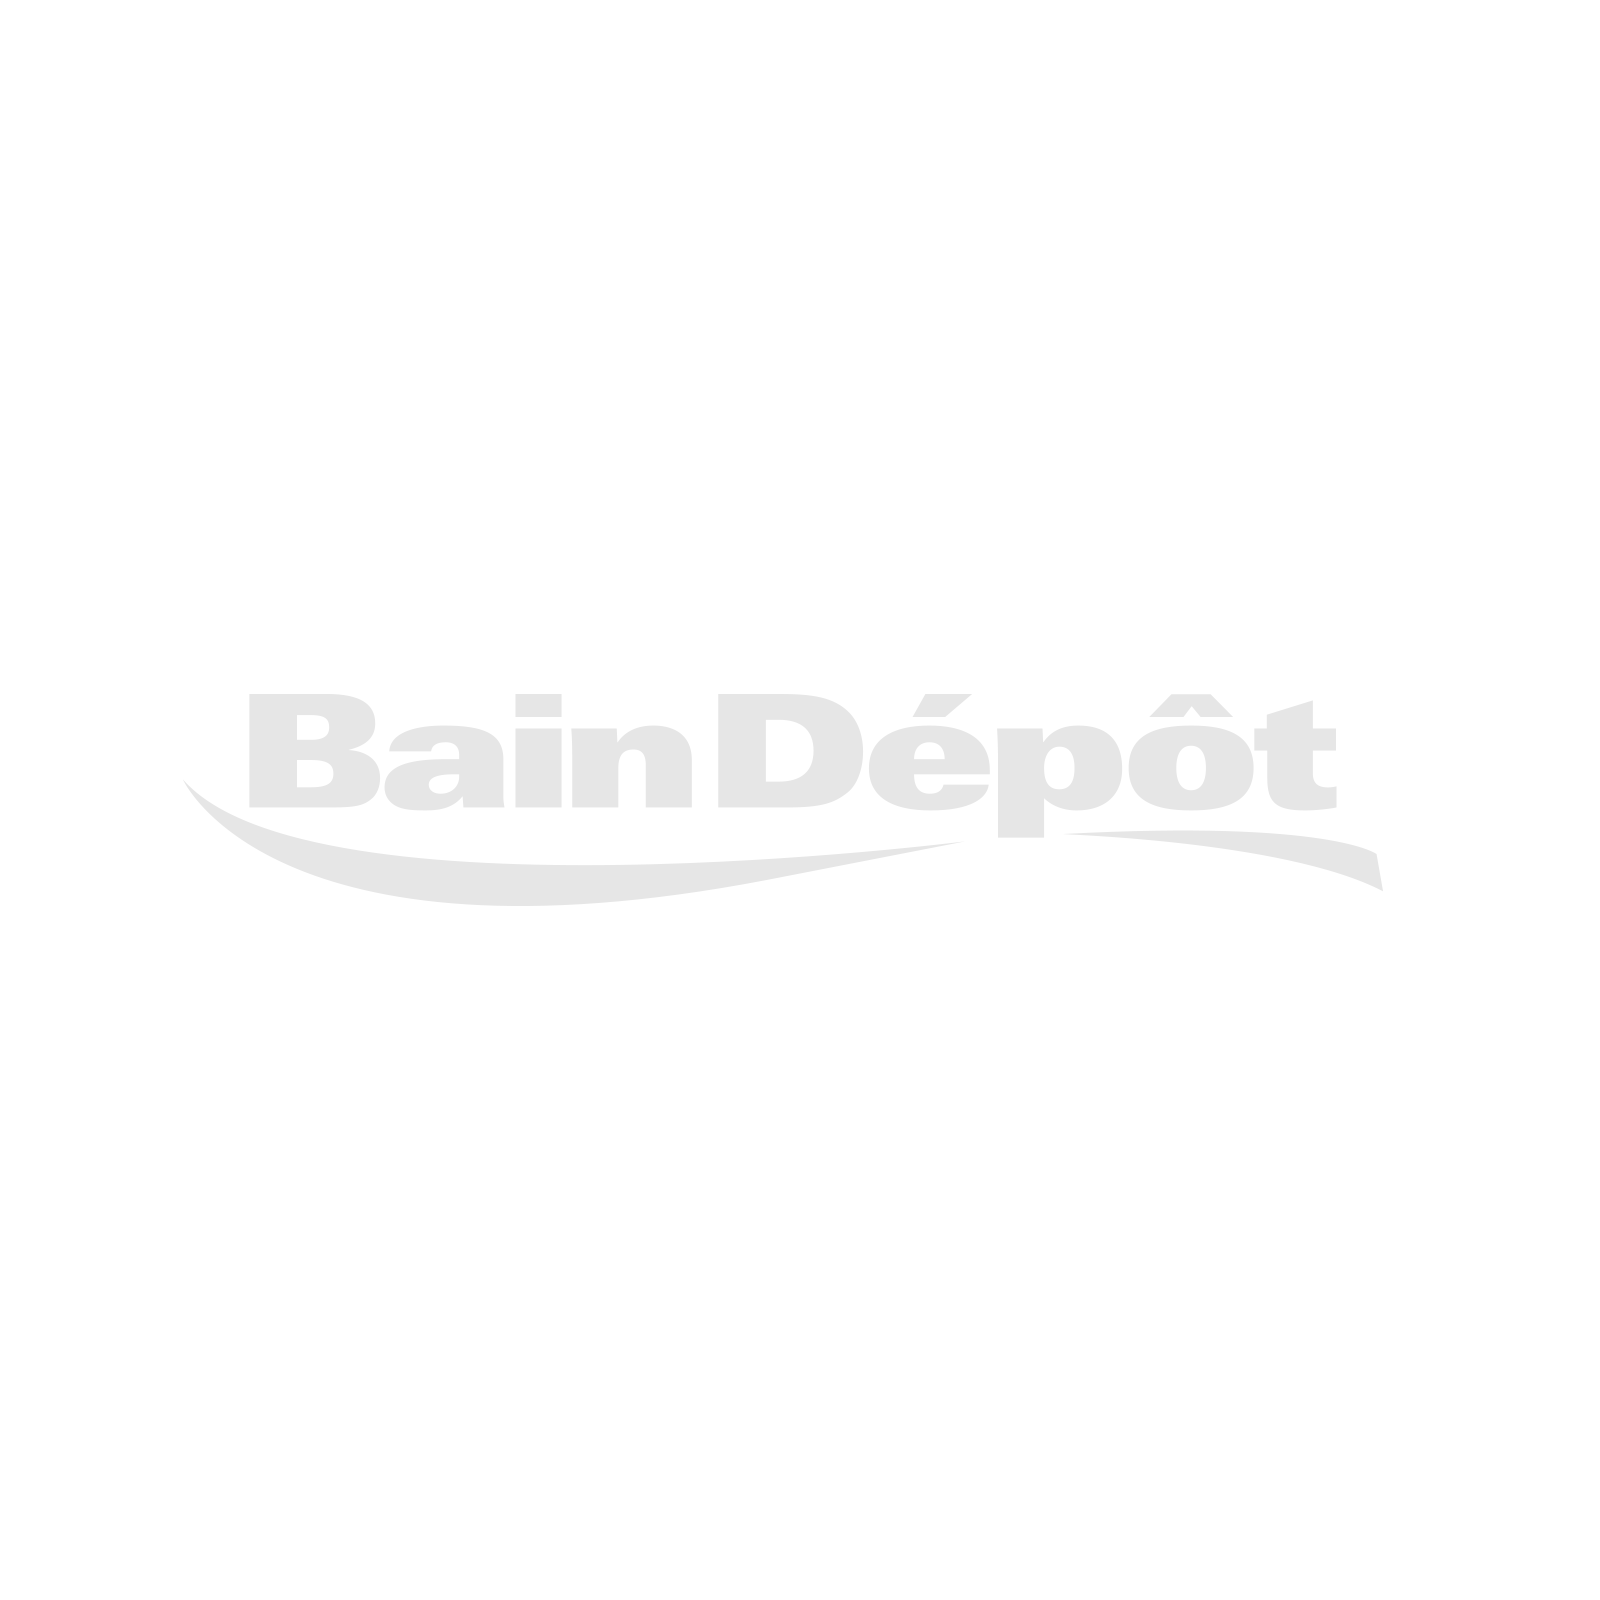 Drop-in drain installation kit for freestanding bathtub